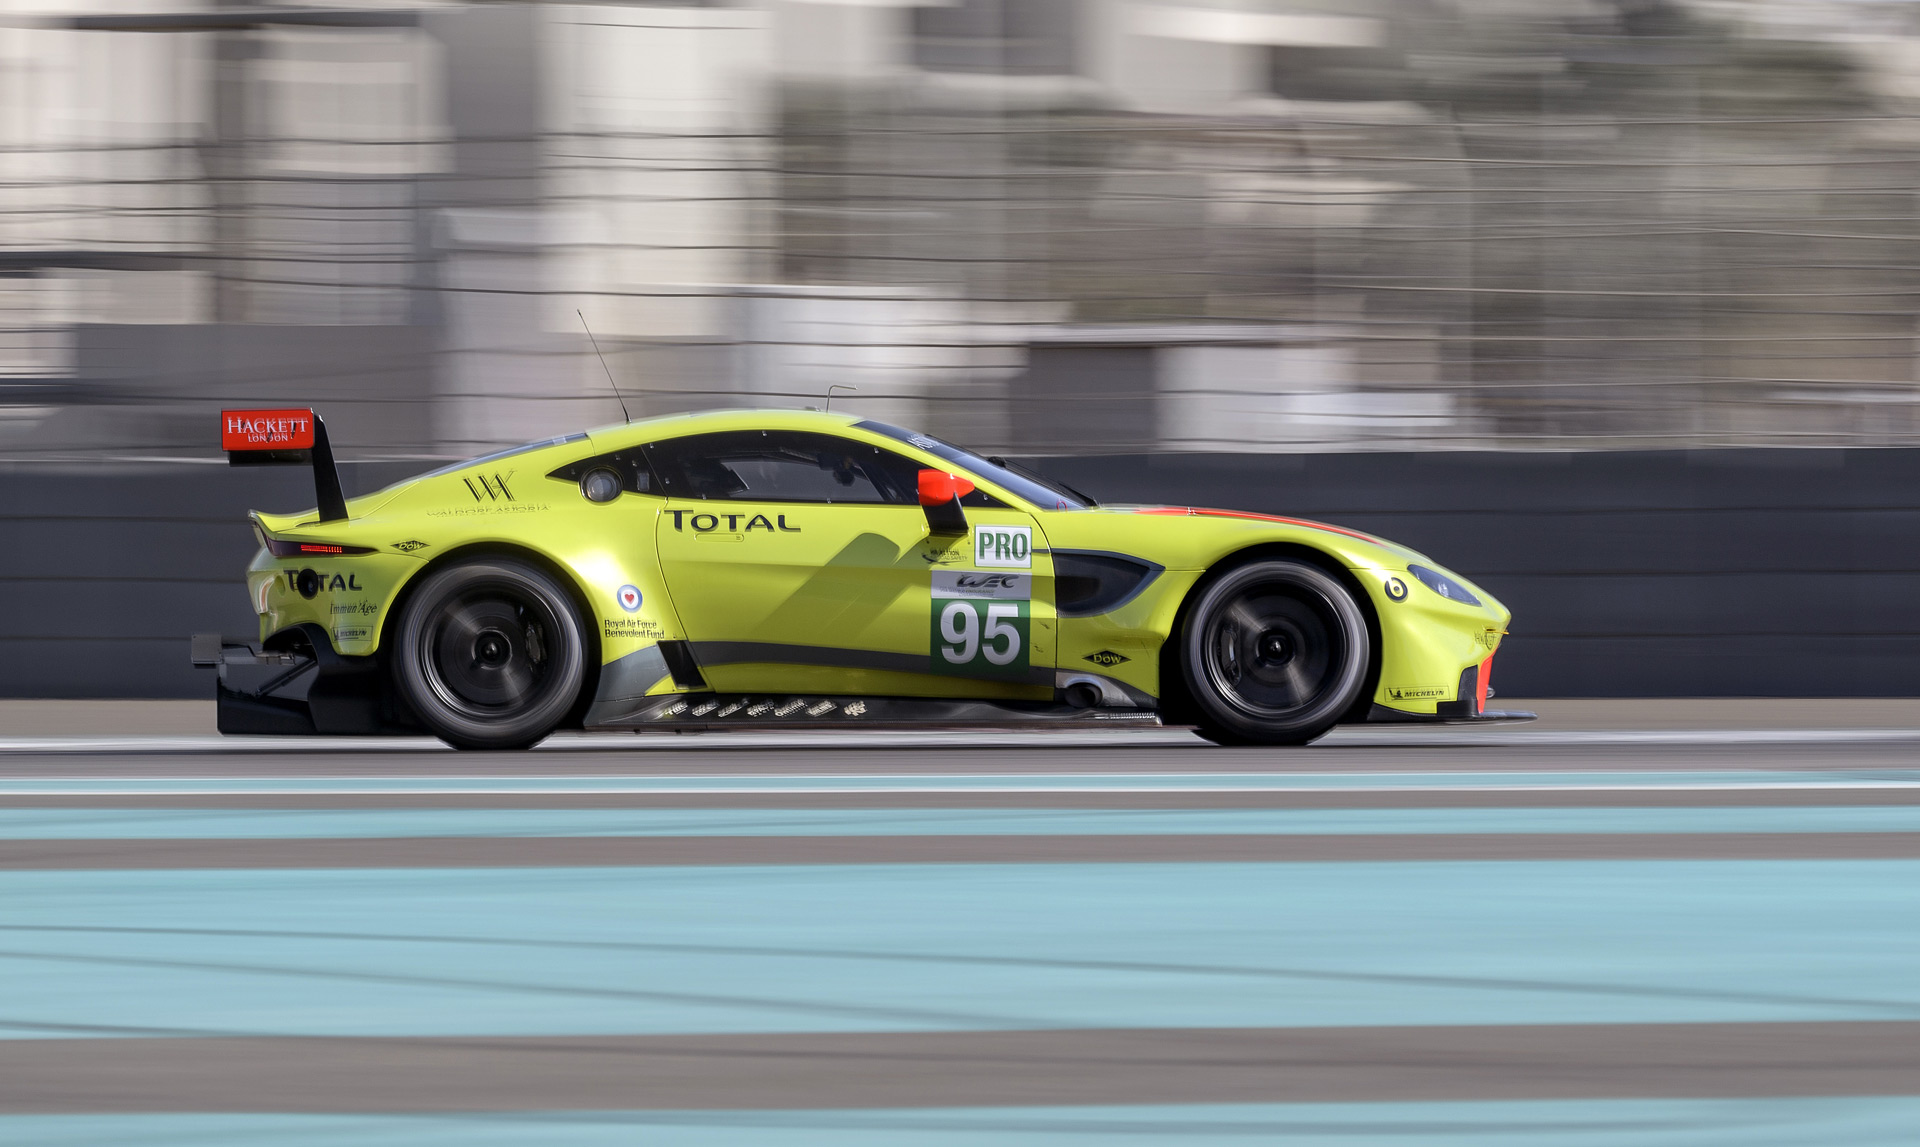 new aston martin vantage race car ready to take on 2018/2019 wec